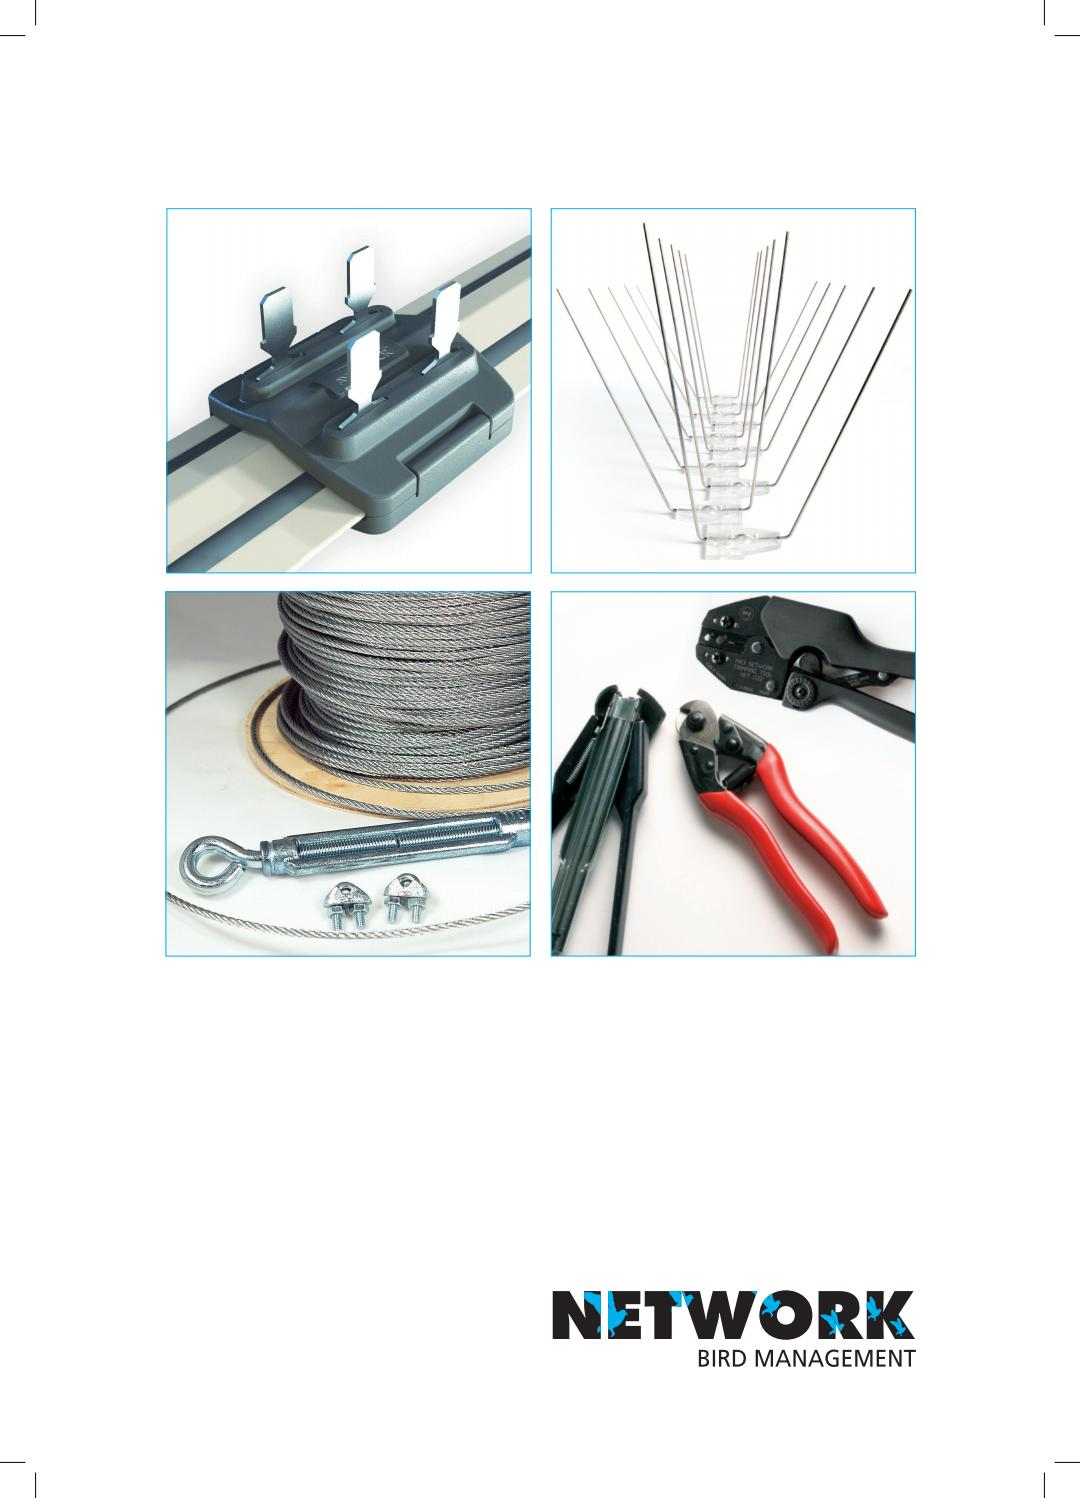 LONG SERIES applicator Cable and wire pigeon ring numbering tool